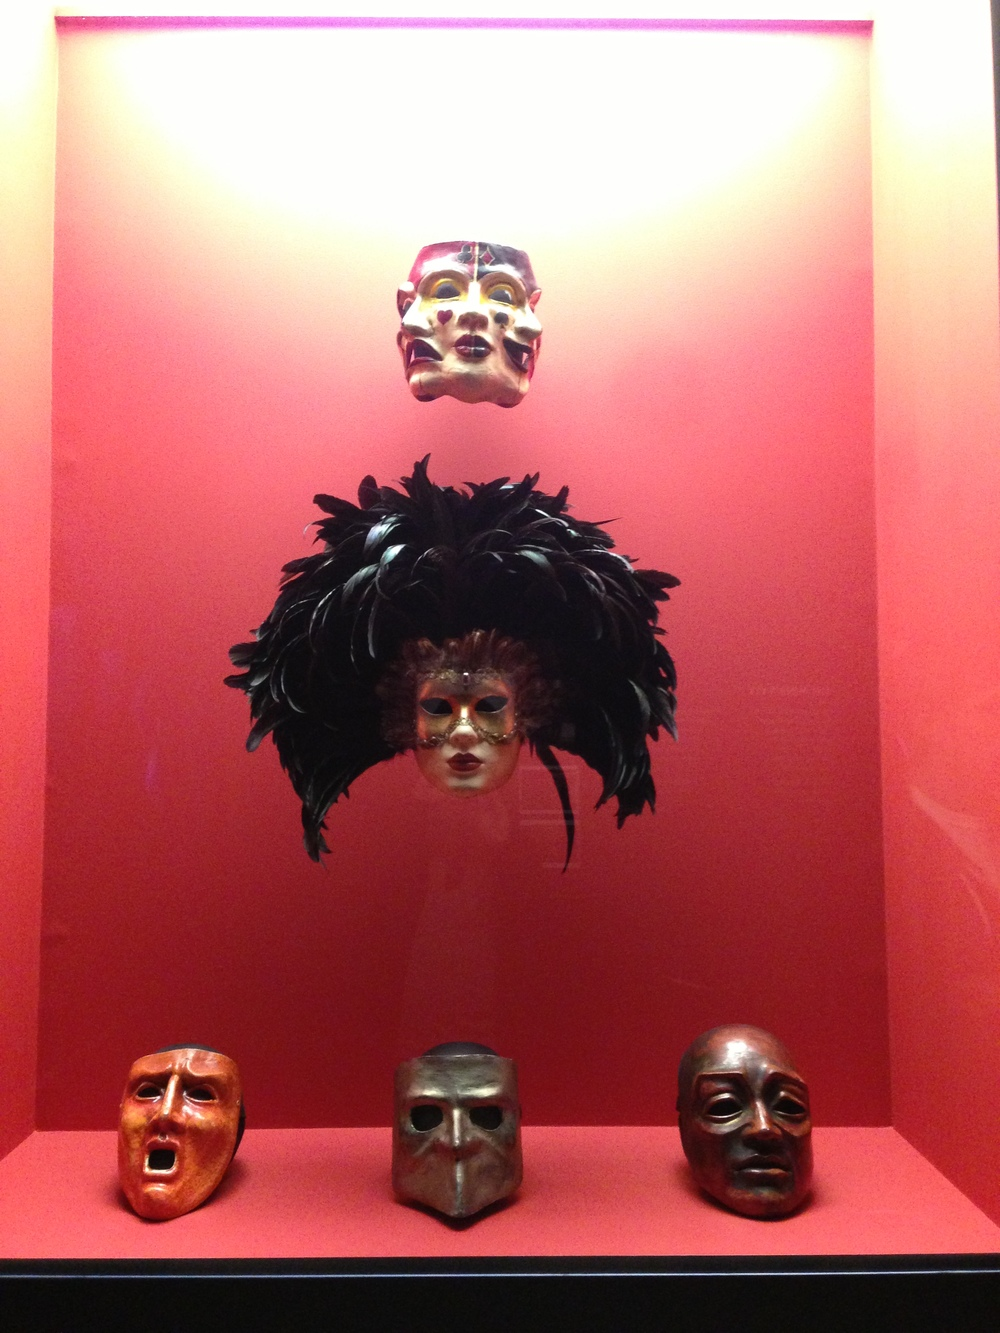 Last but not least, a sampling of the spookymasquerademasks from Eyes Wide Shut.